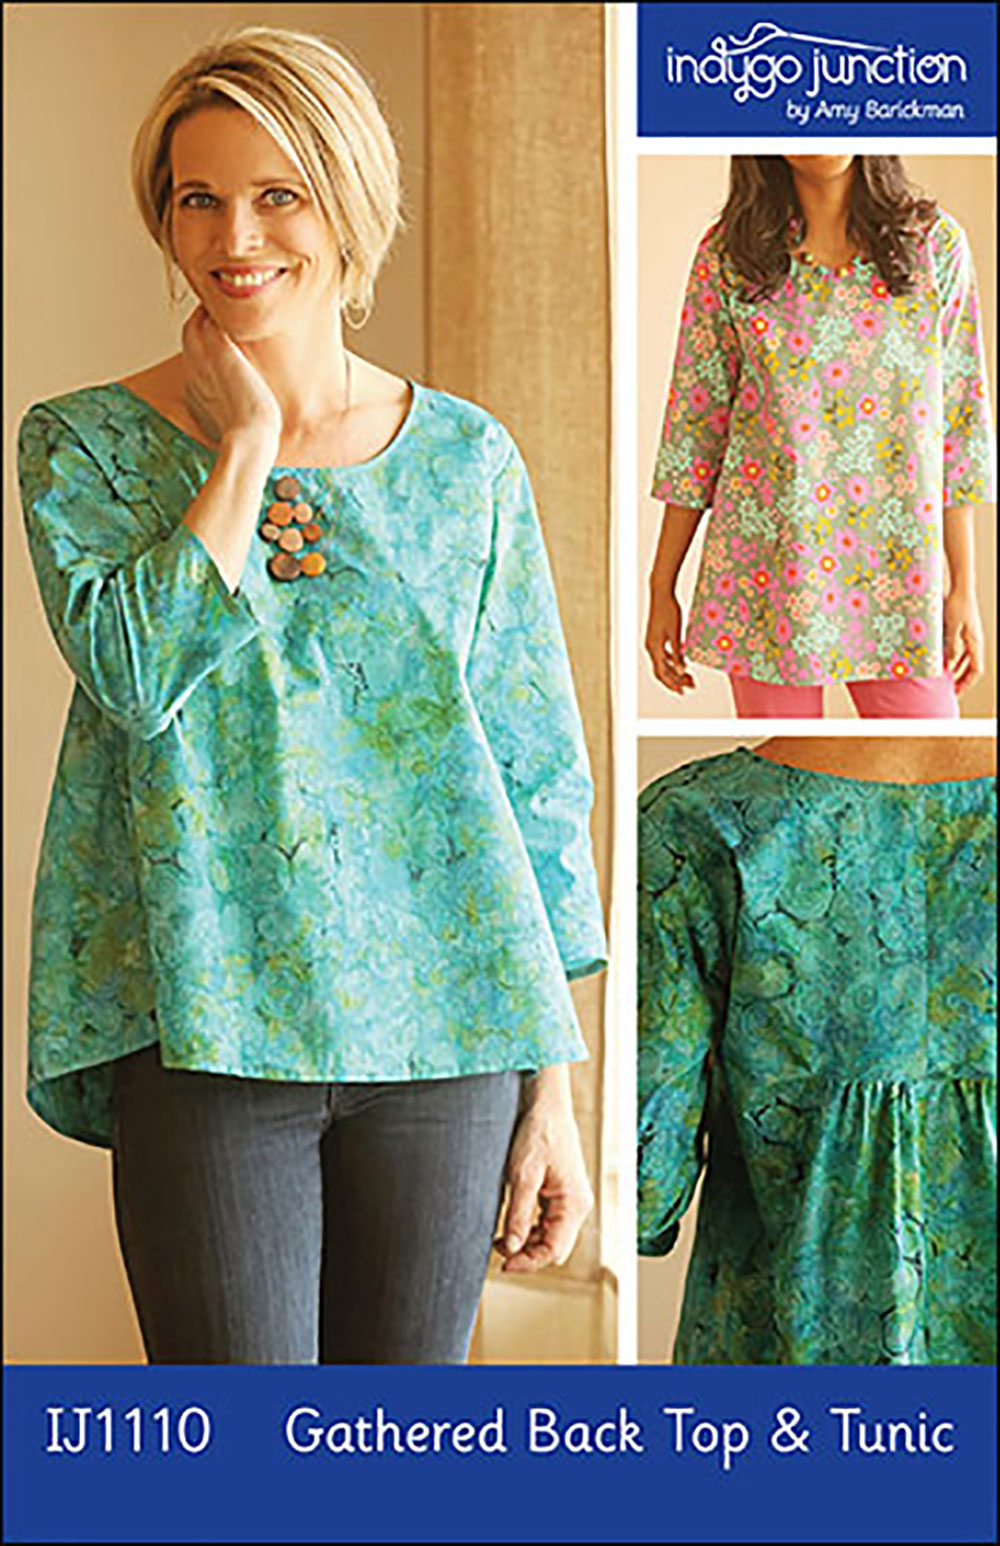 Indygo Junction IJ1110 Gathered Back Top & Tunic